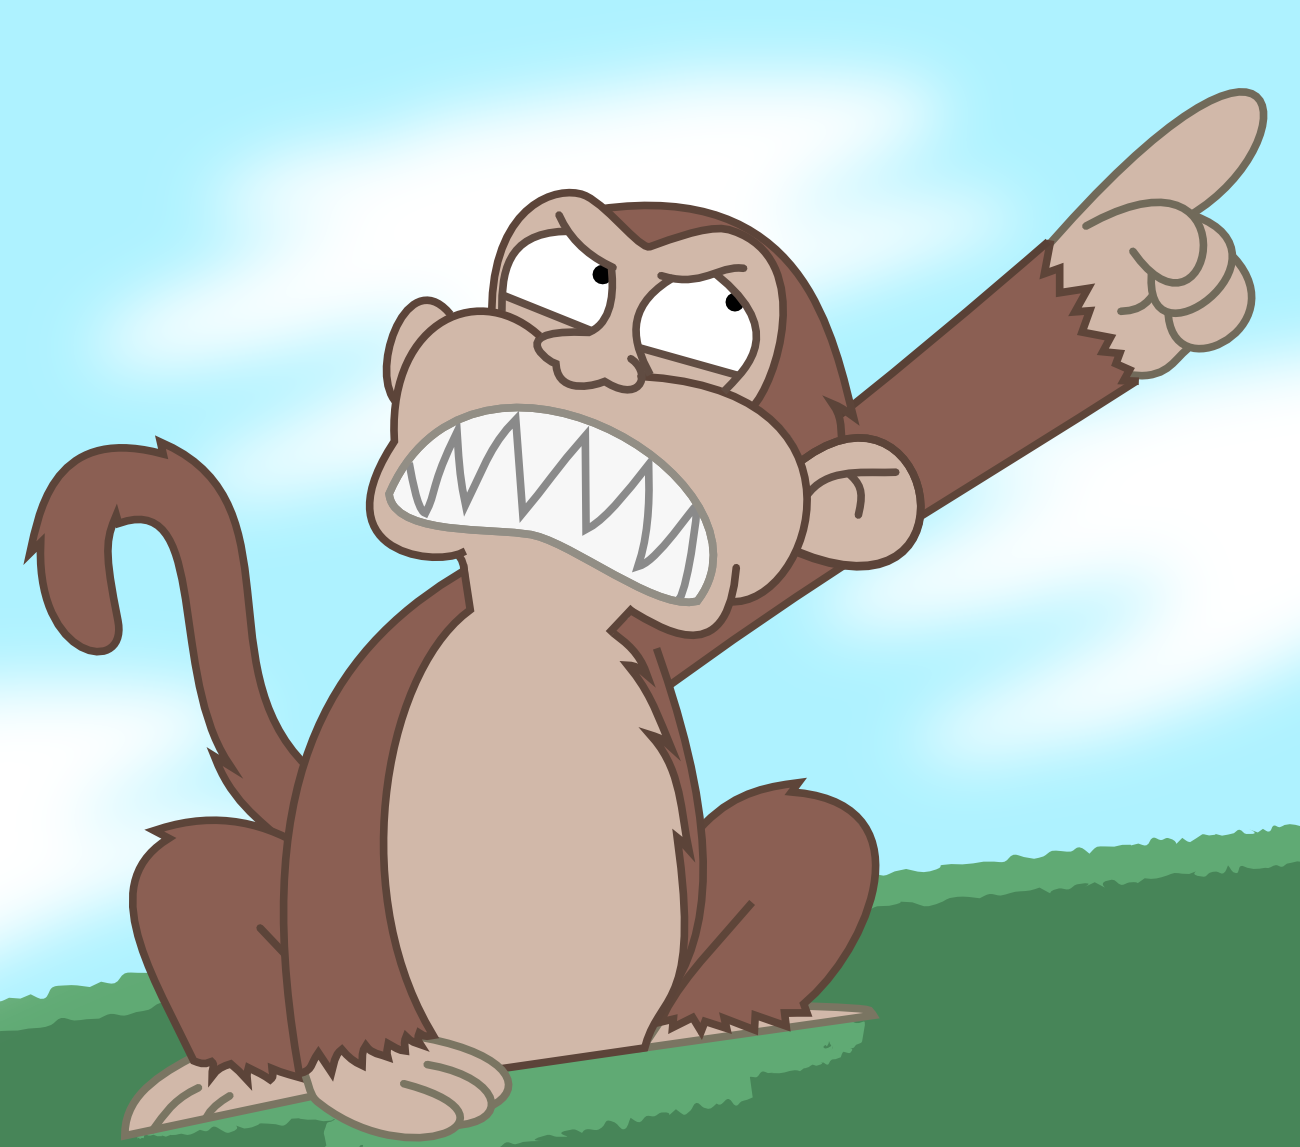 Angry Monkey Family Guy Evil monkeyby lonmcgregor